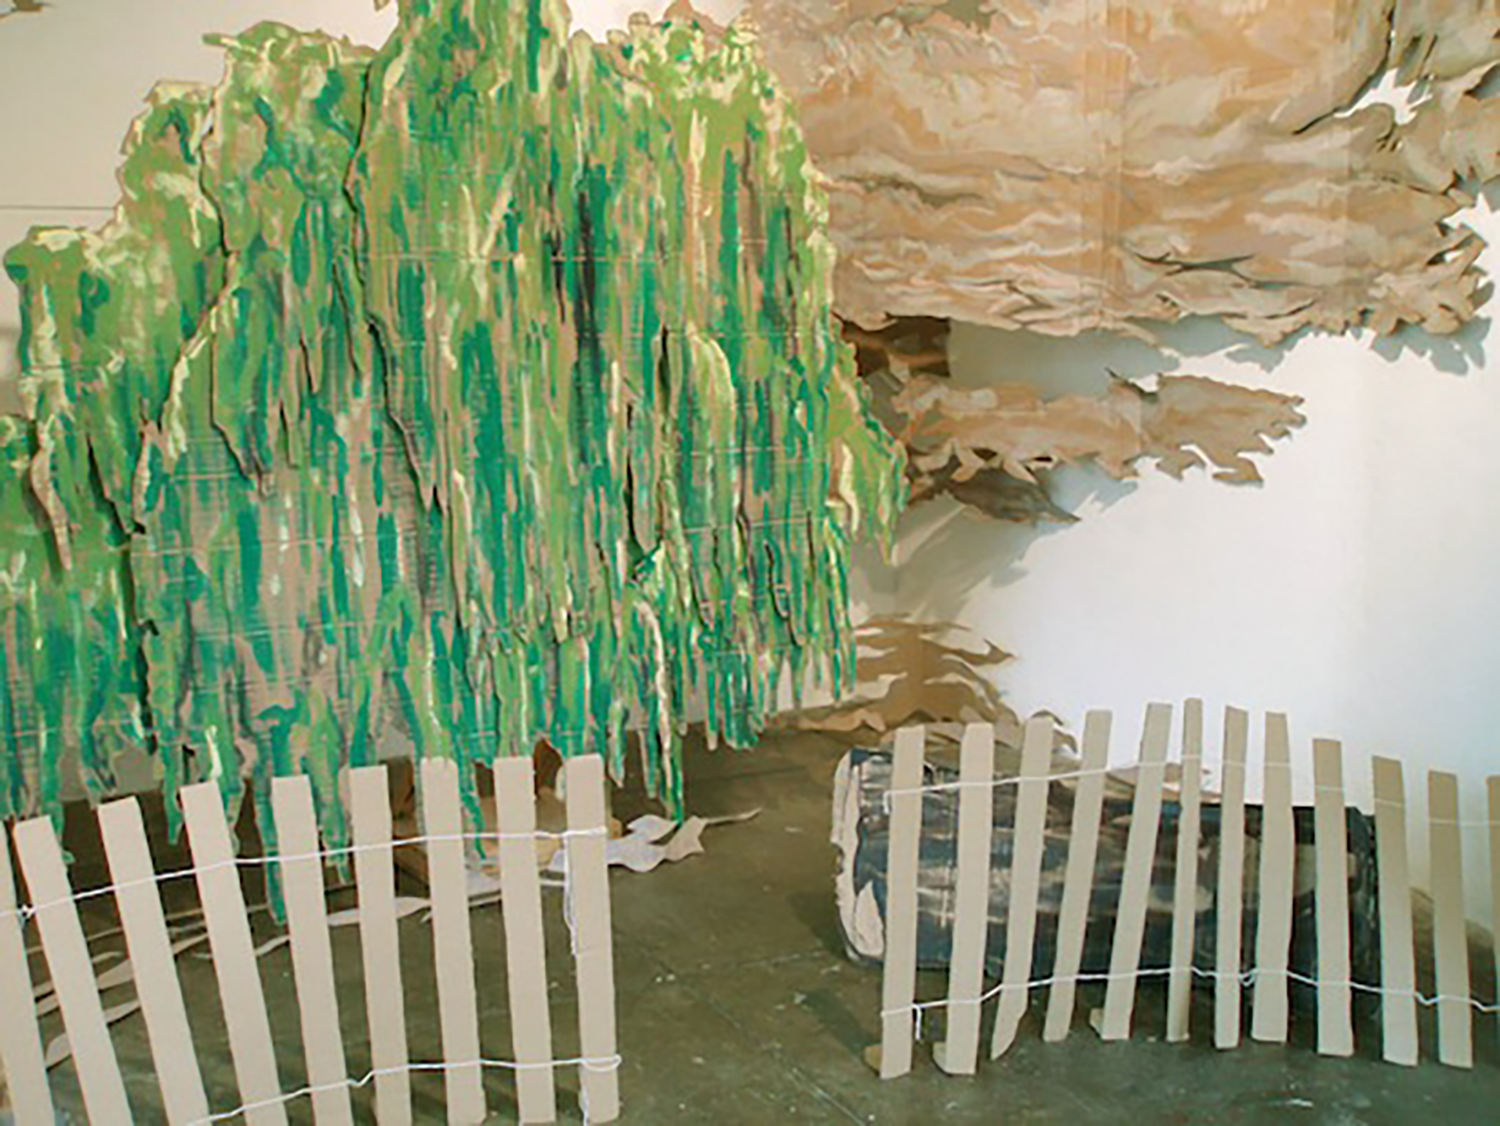 Constable is cool (installation detail), 2006, Mixed media installation, Dimensions variable